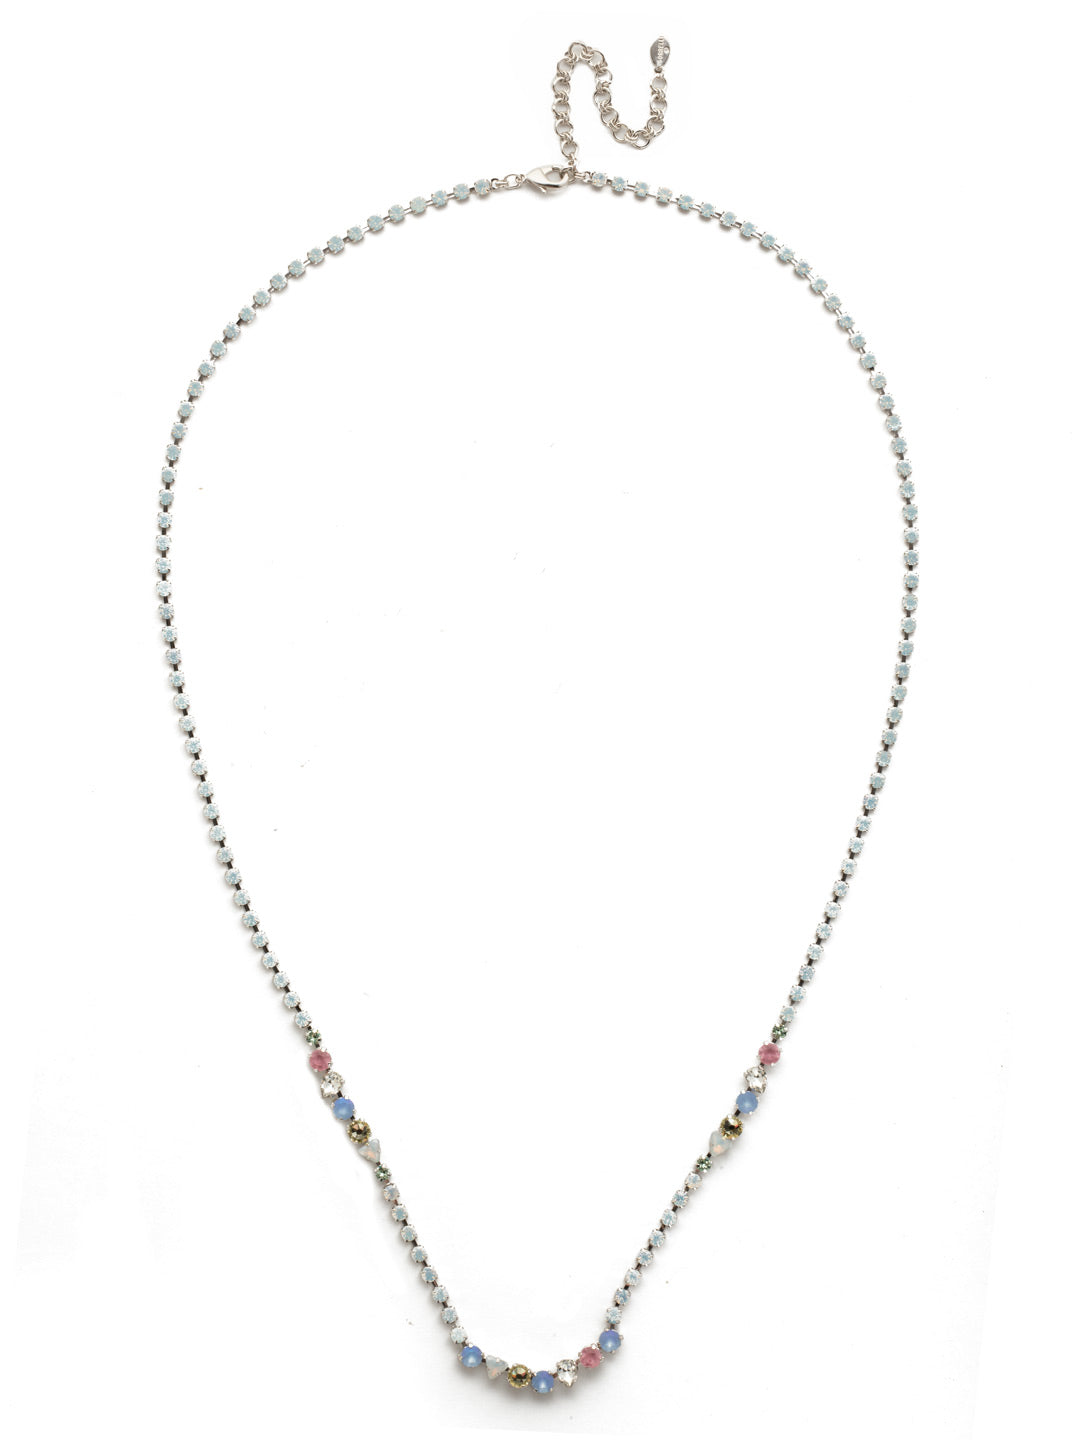 Aviva Long Necklace - NEK24RHSSU